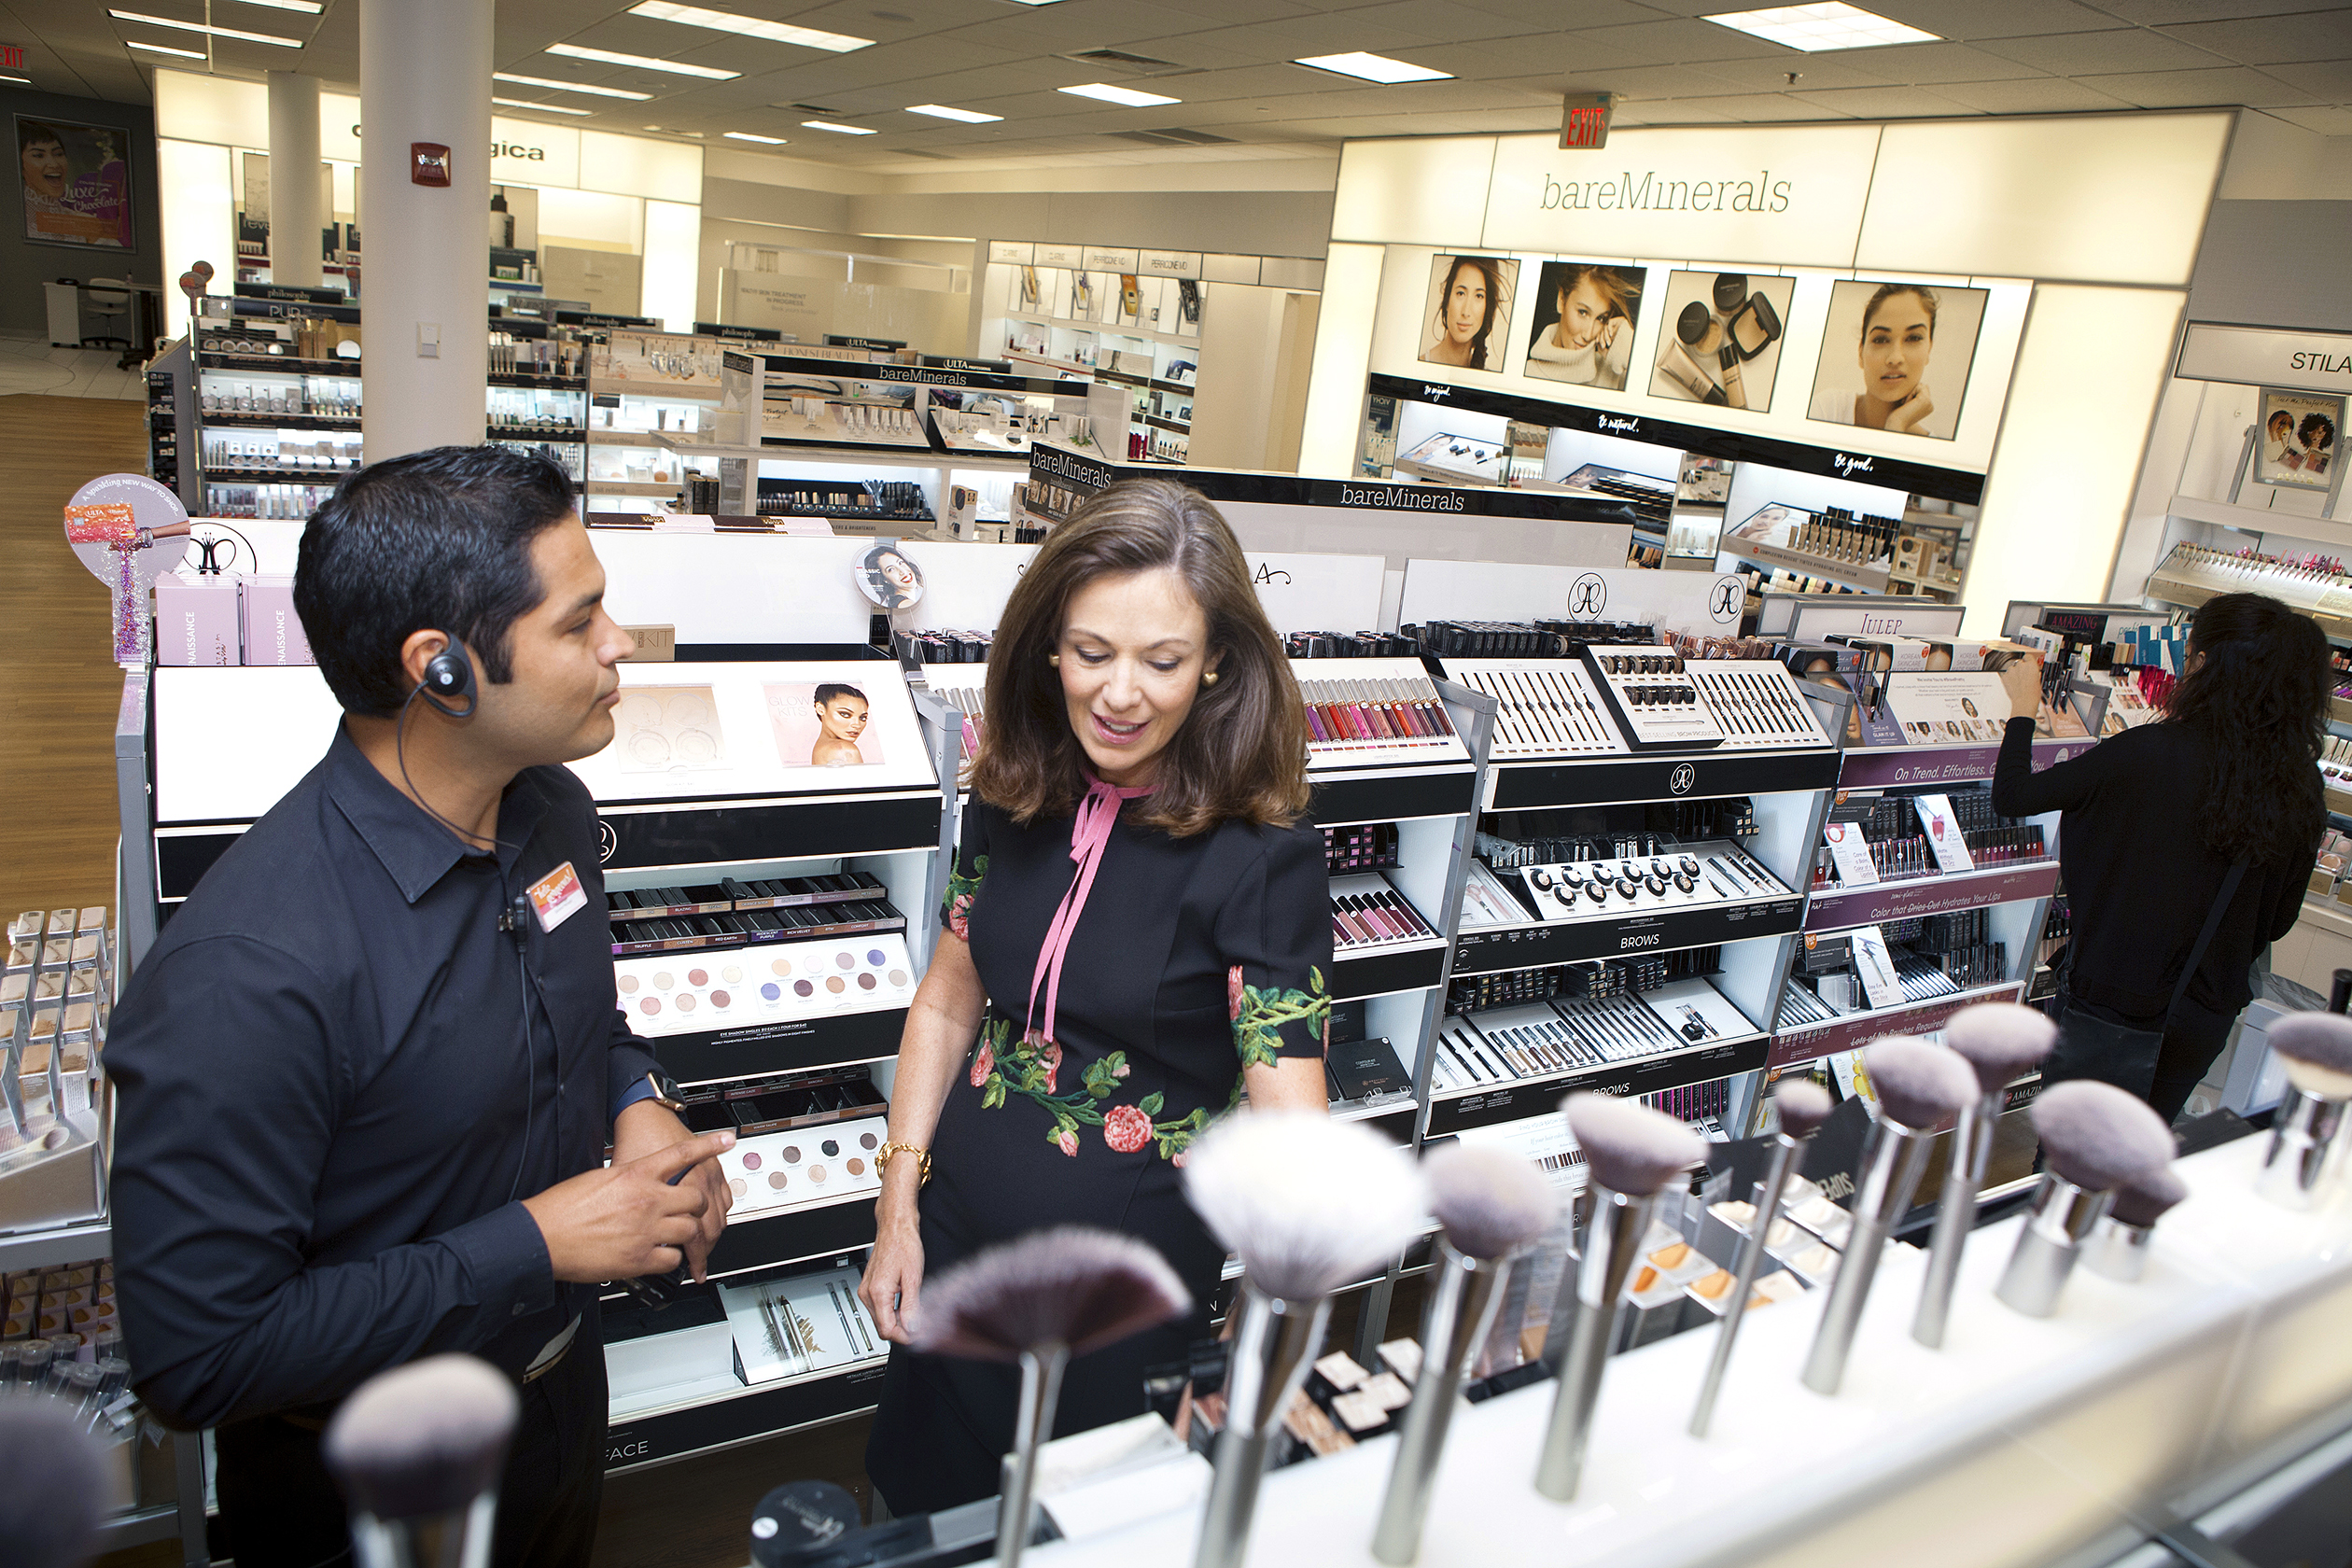 Ulta Beauty CEO Mary Dillon checking inventory with manager Domingo Gonzalez III at an Ulta store in Naperville, Ill., in August 2016.